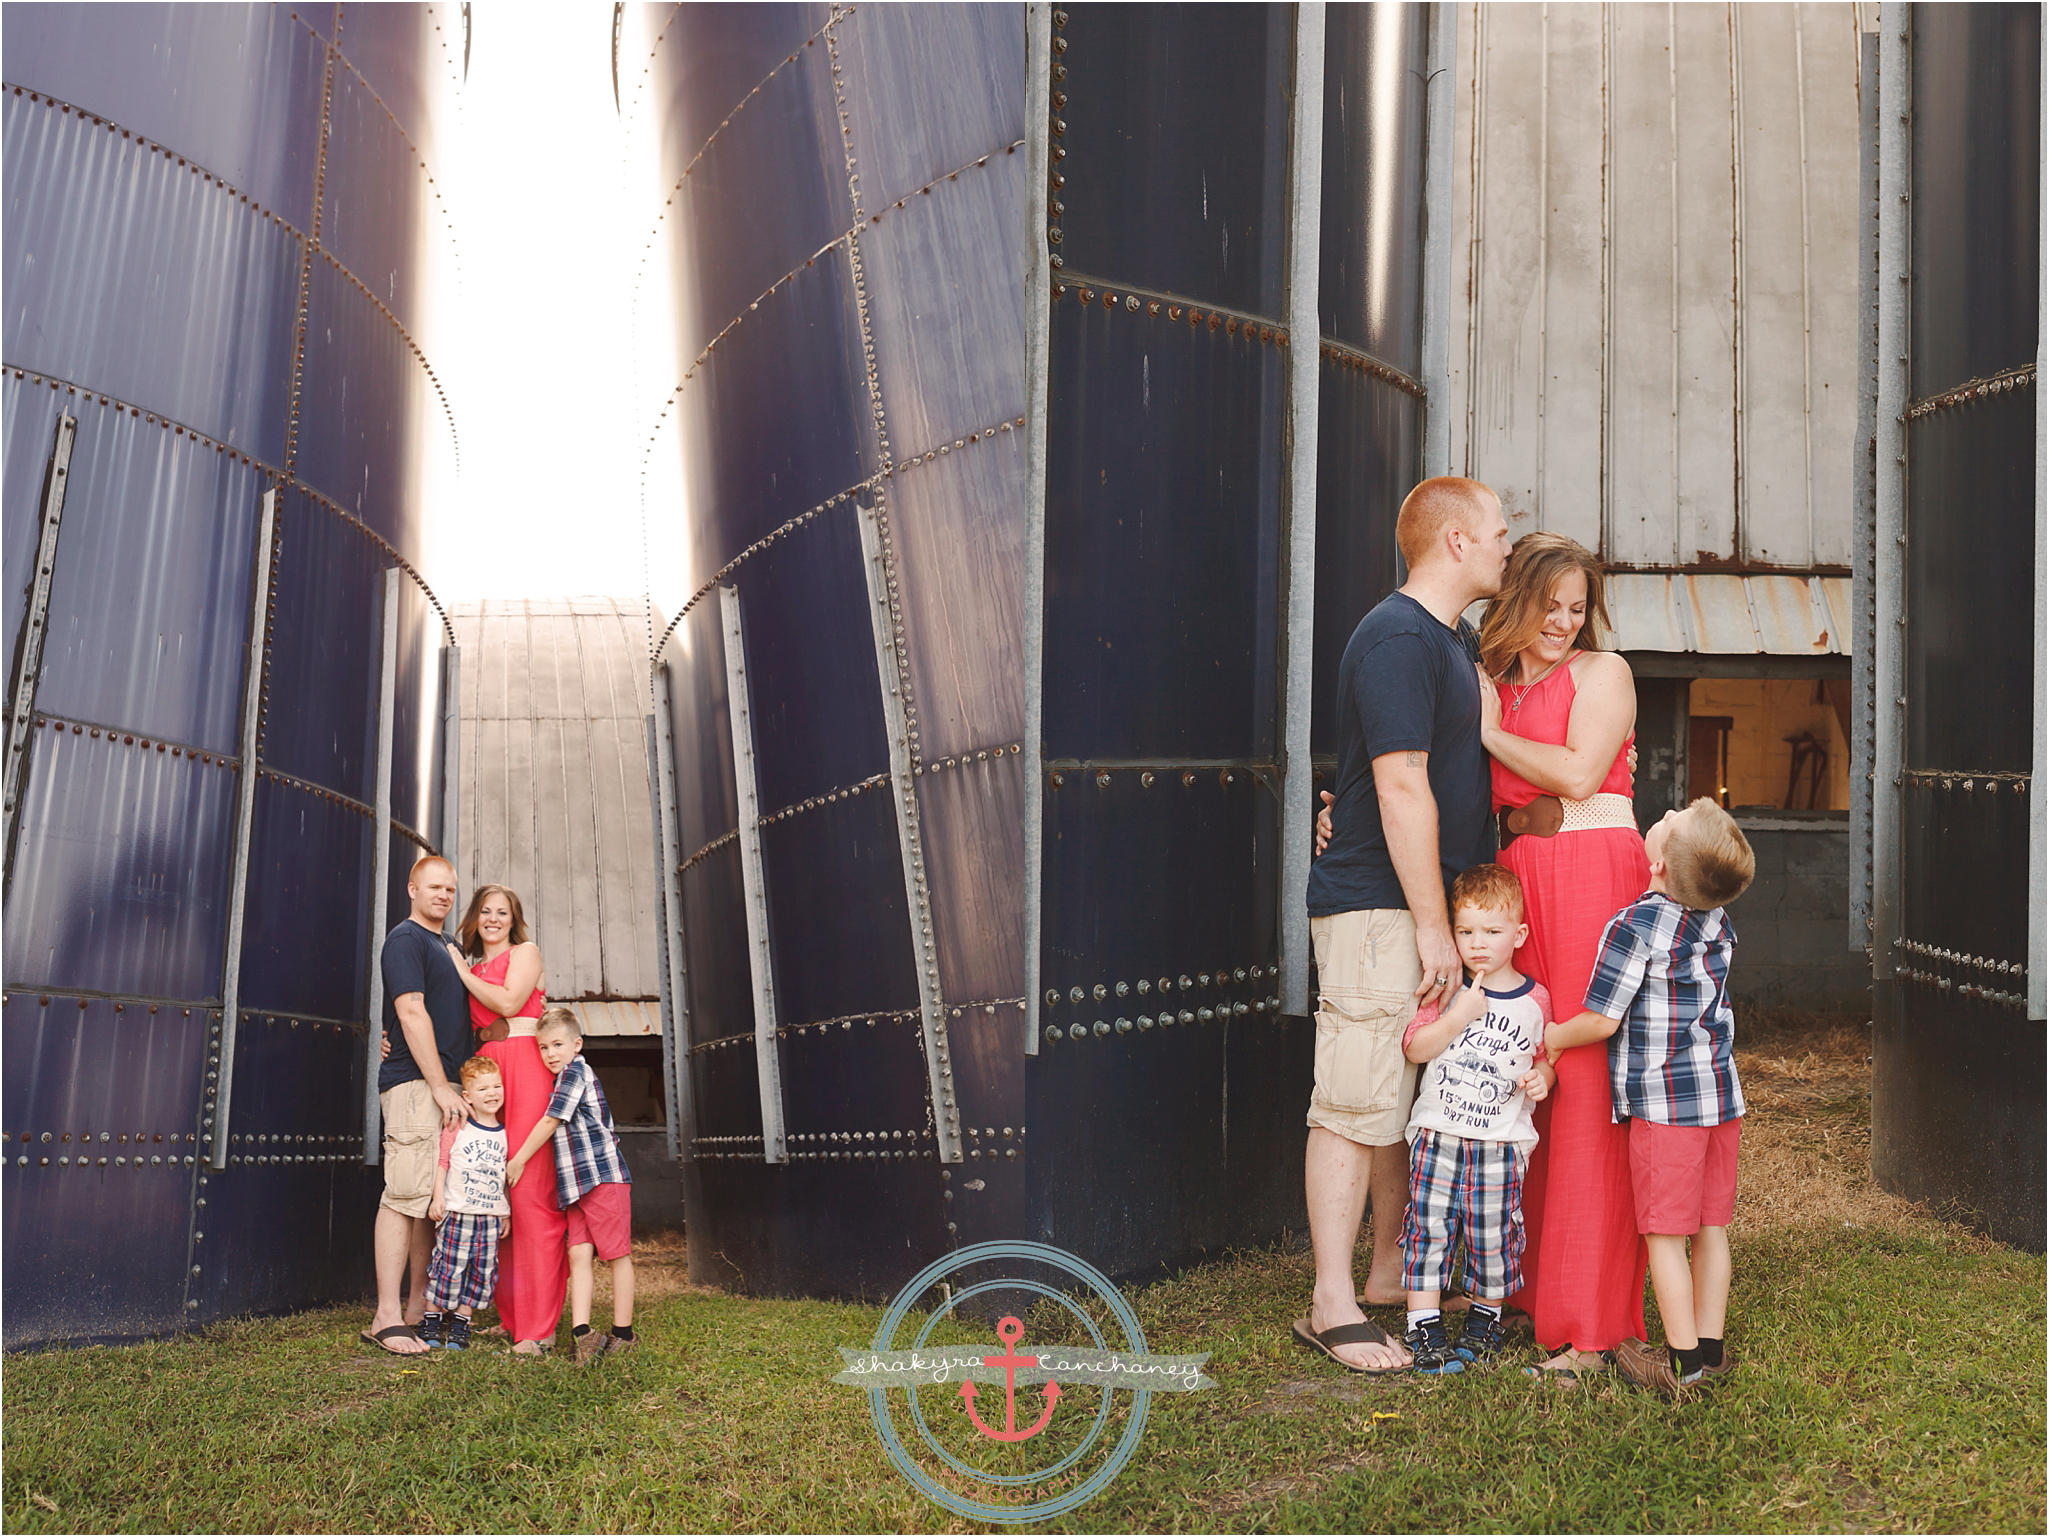 Virginia Beach Photographer | Family Session | Children Photography www.shakyracanchaney.com